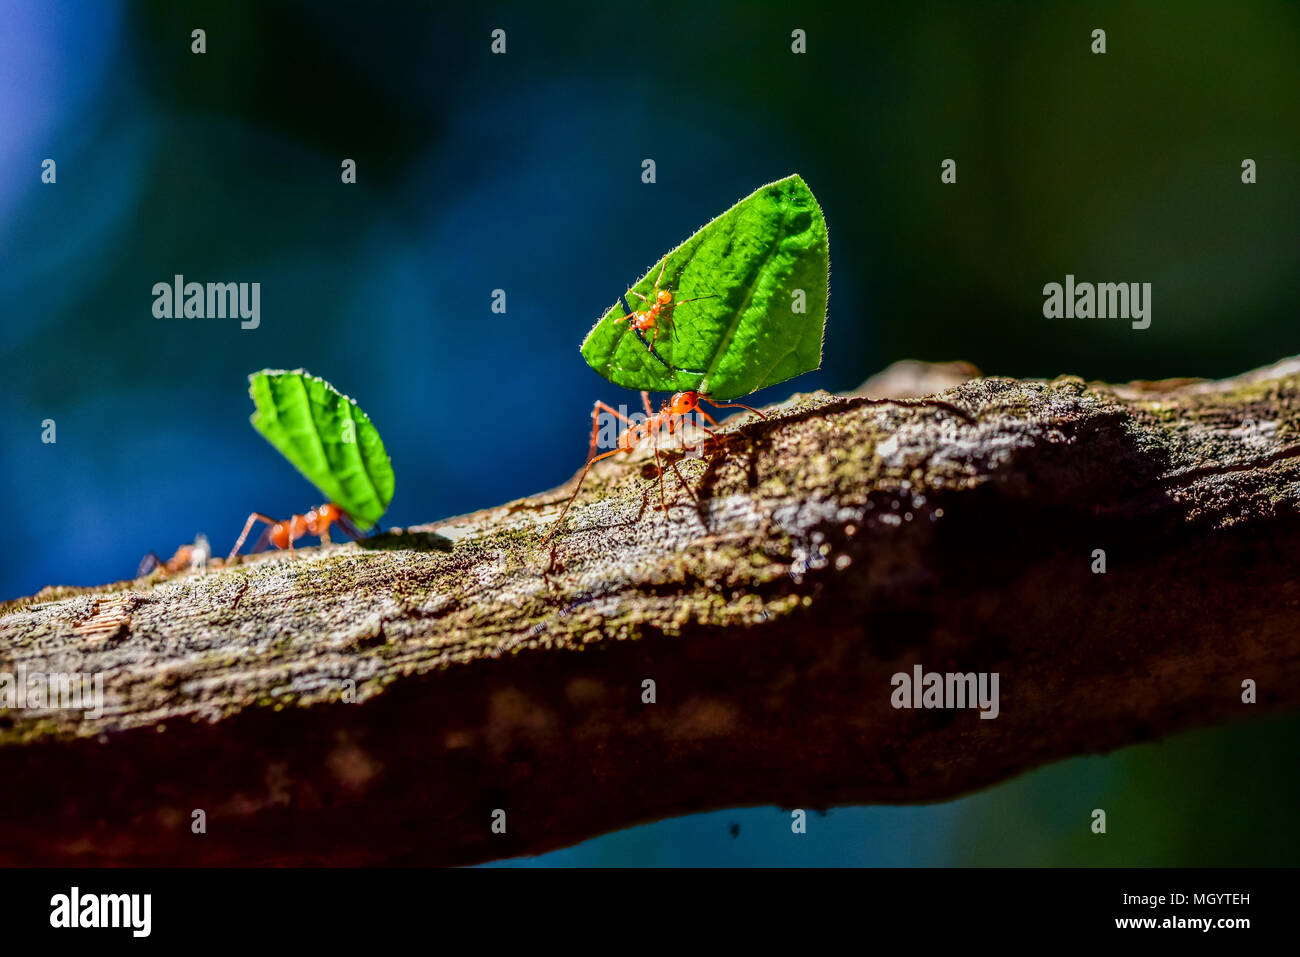 Ants are carrying on leaves - Stock Image